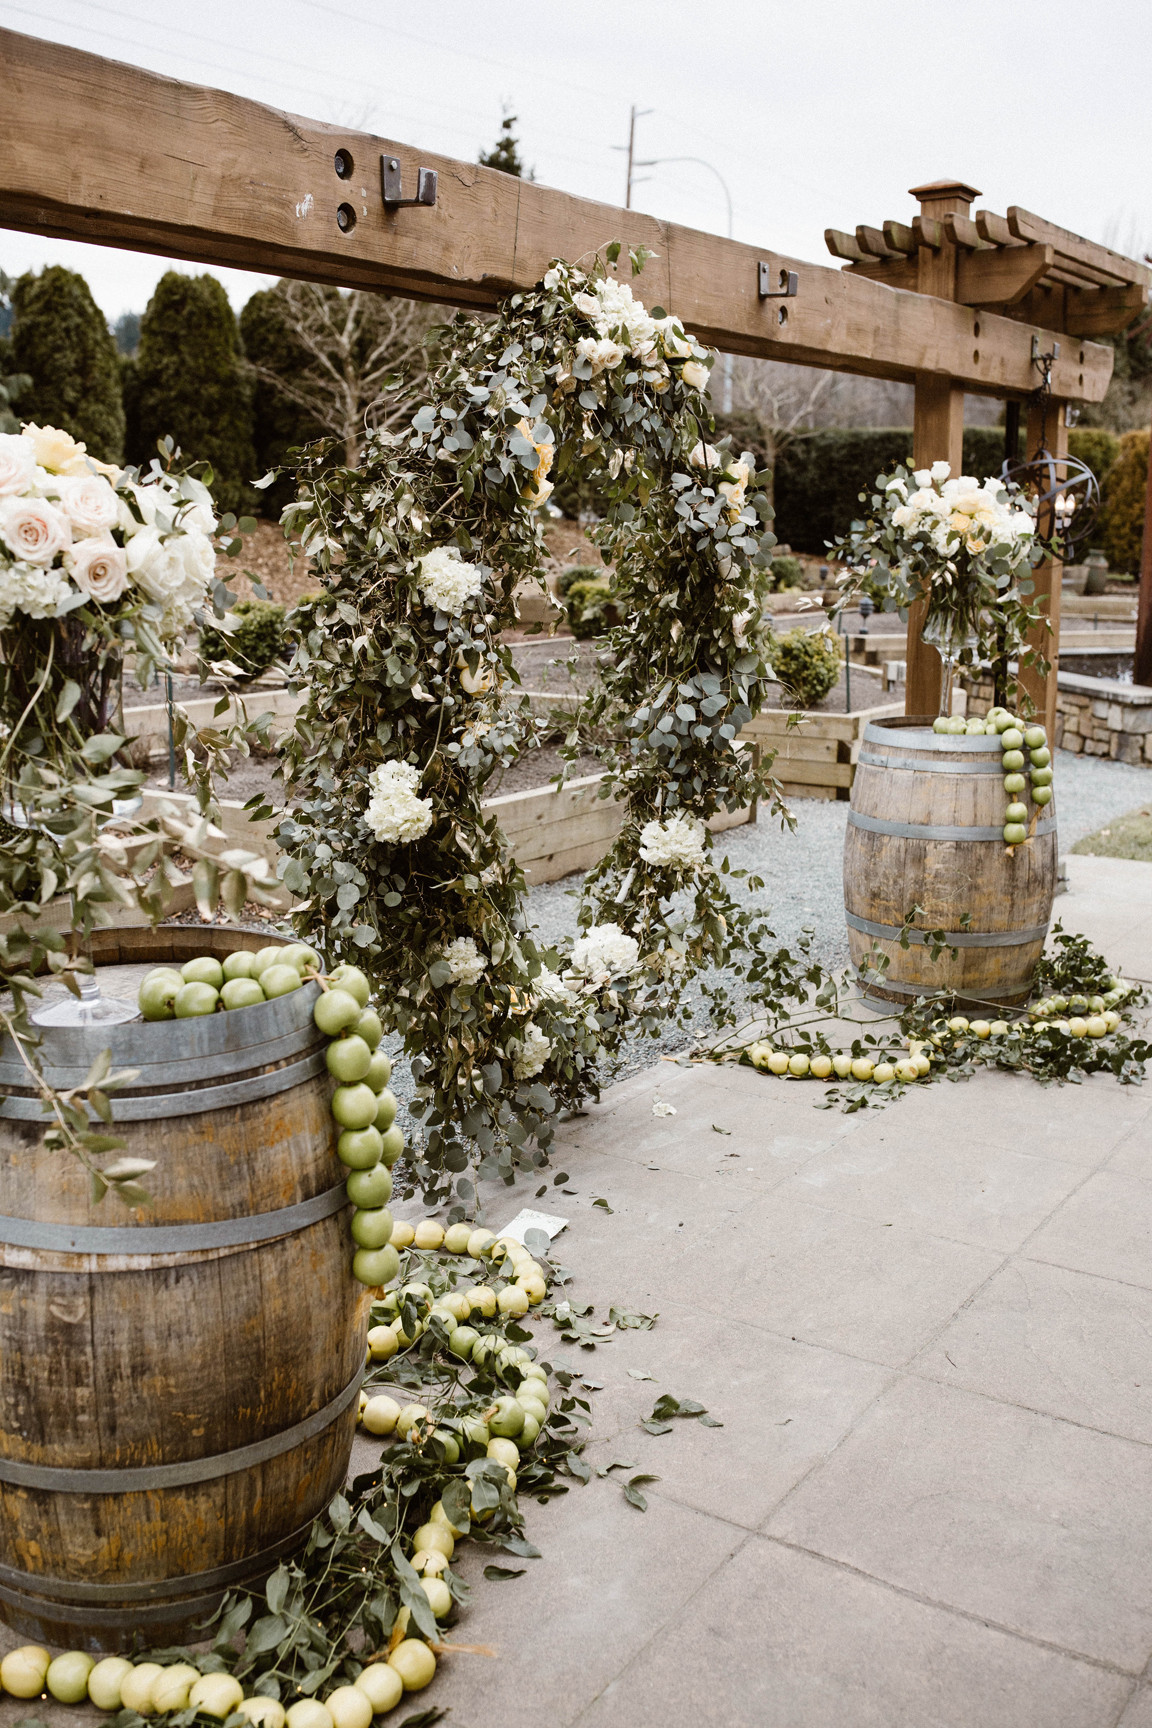 Willows+Lodge_Woodinville_2017_Weddings+In+Woodinville198.jpg